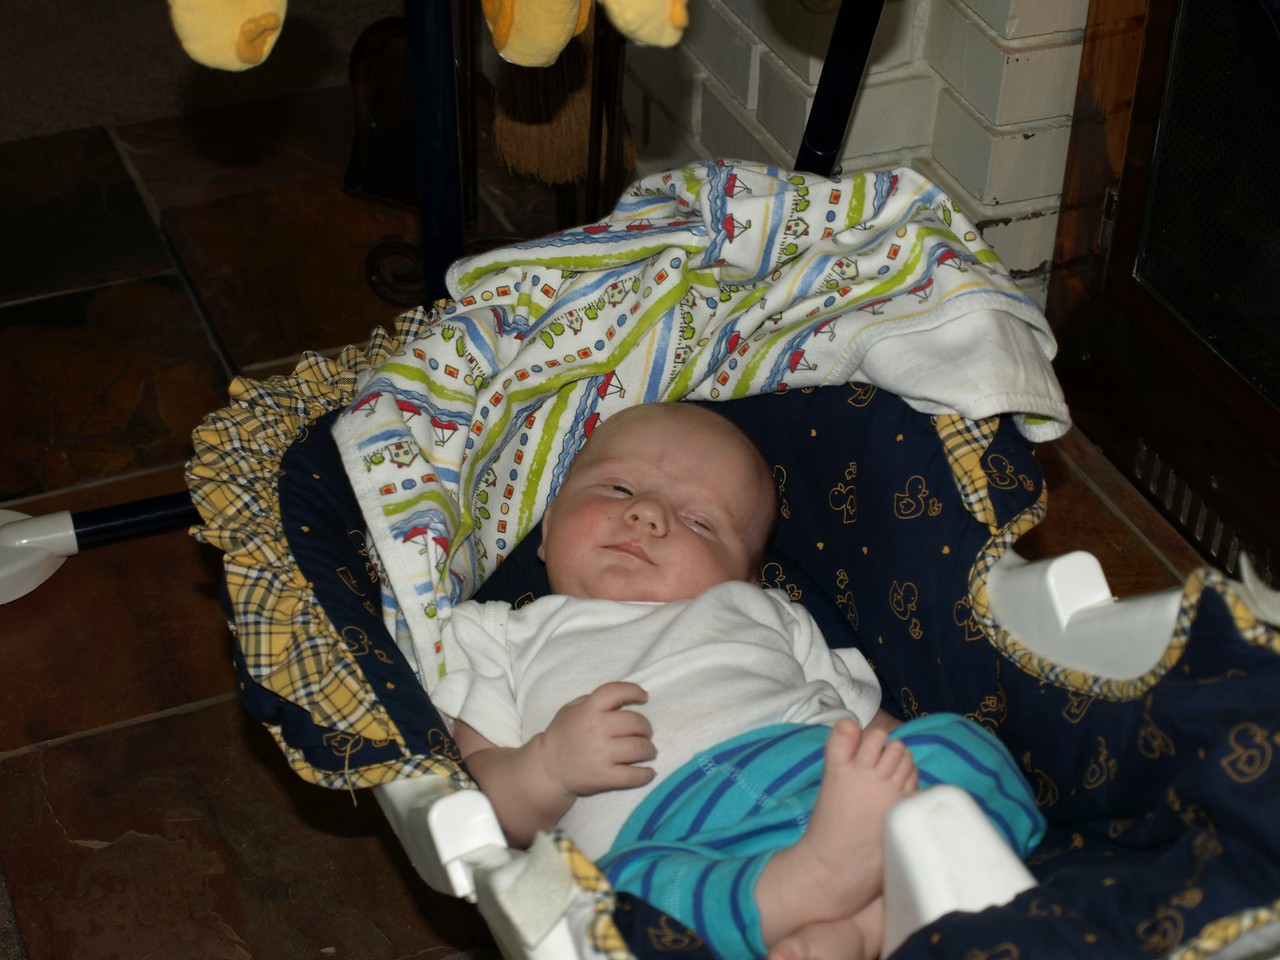 Cody loved touching the baby swing with or without baby Rooke.